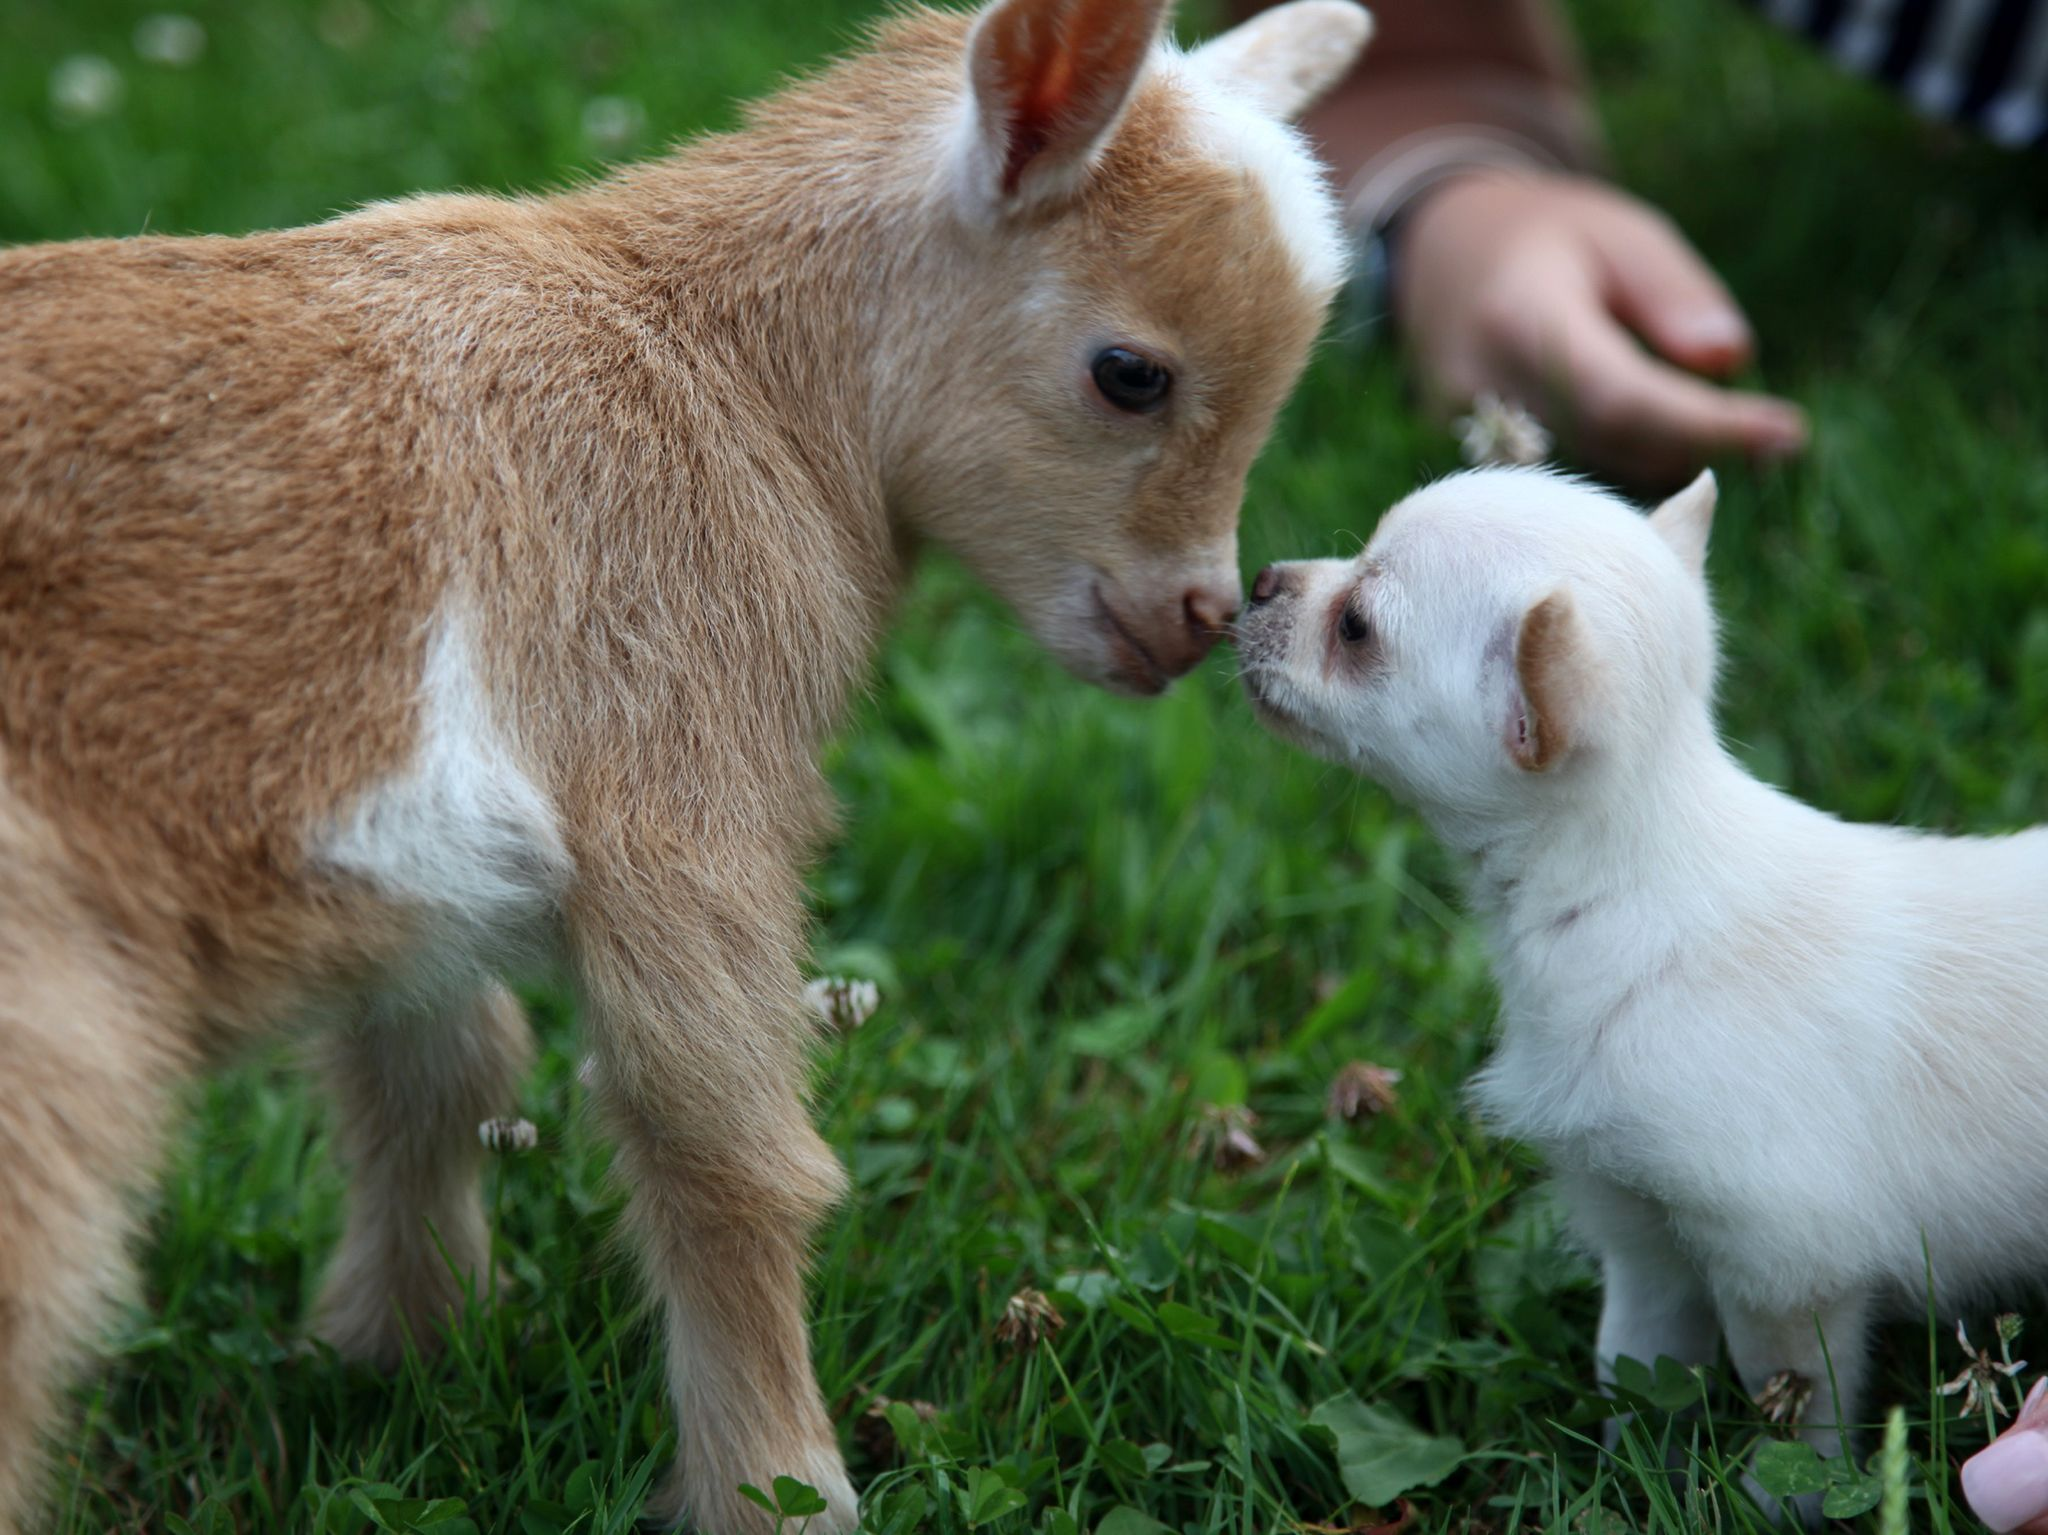 Cumberland, Maine:  Tiny Chihuahua Lola sniffs at one of her best friends, a Nigerian Dwarf goat... [Photo of the day - May 2020]